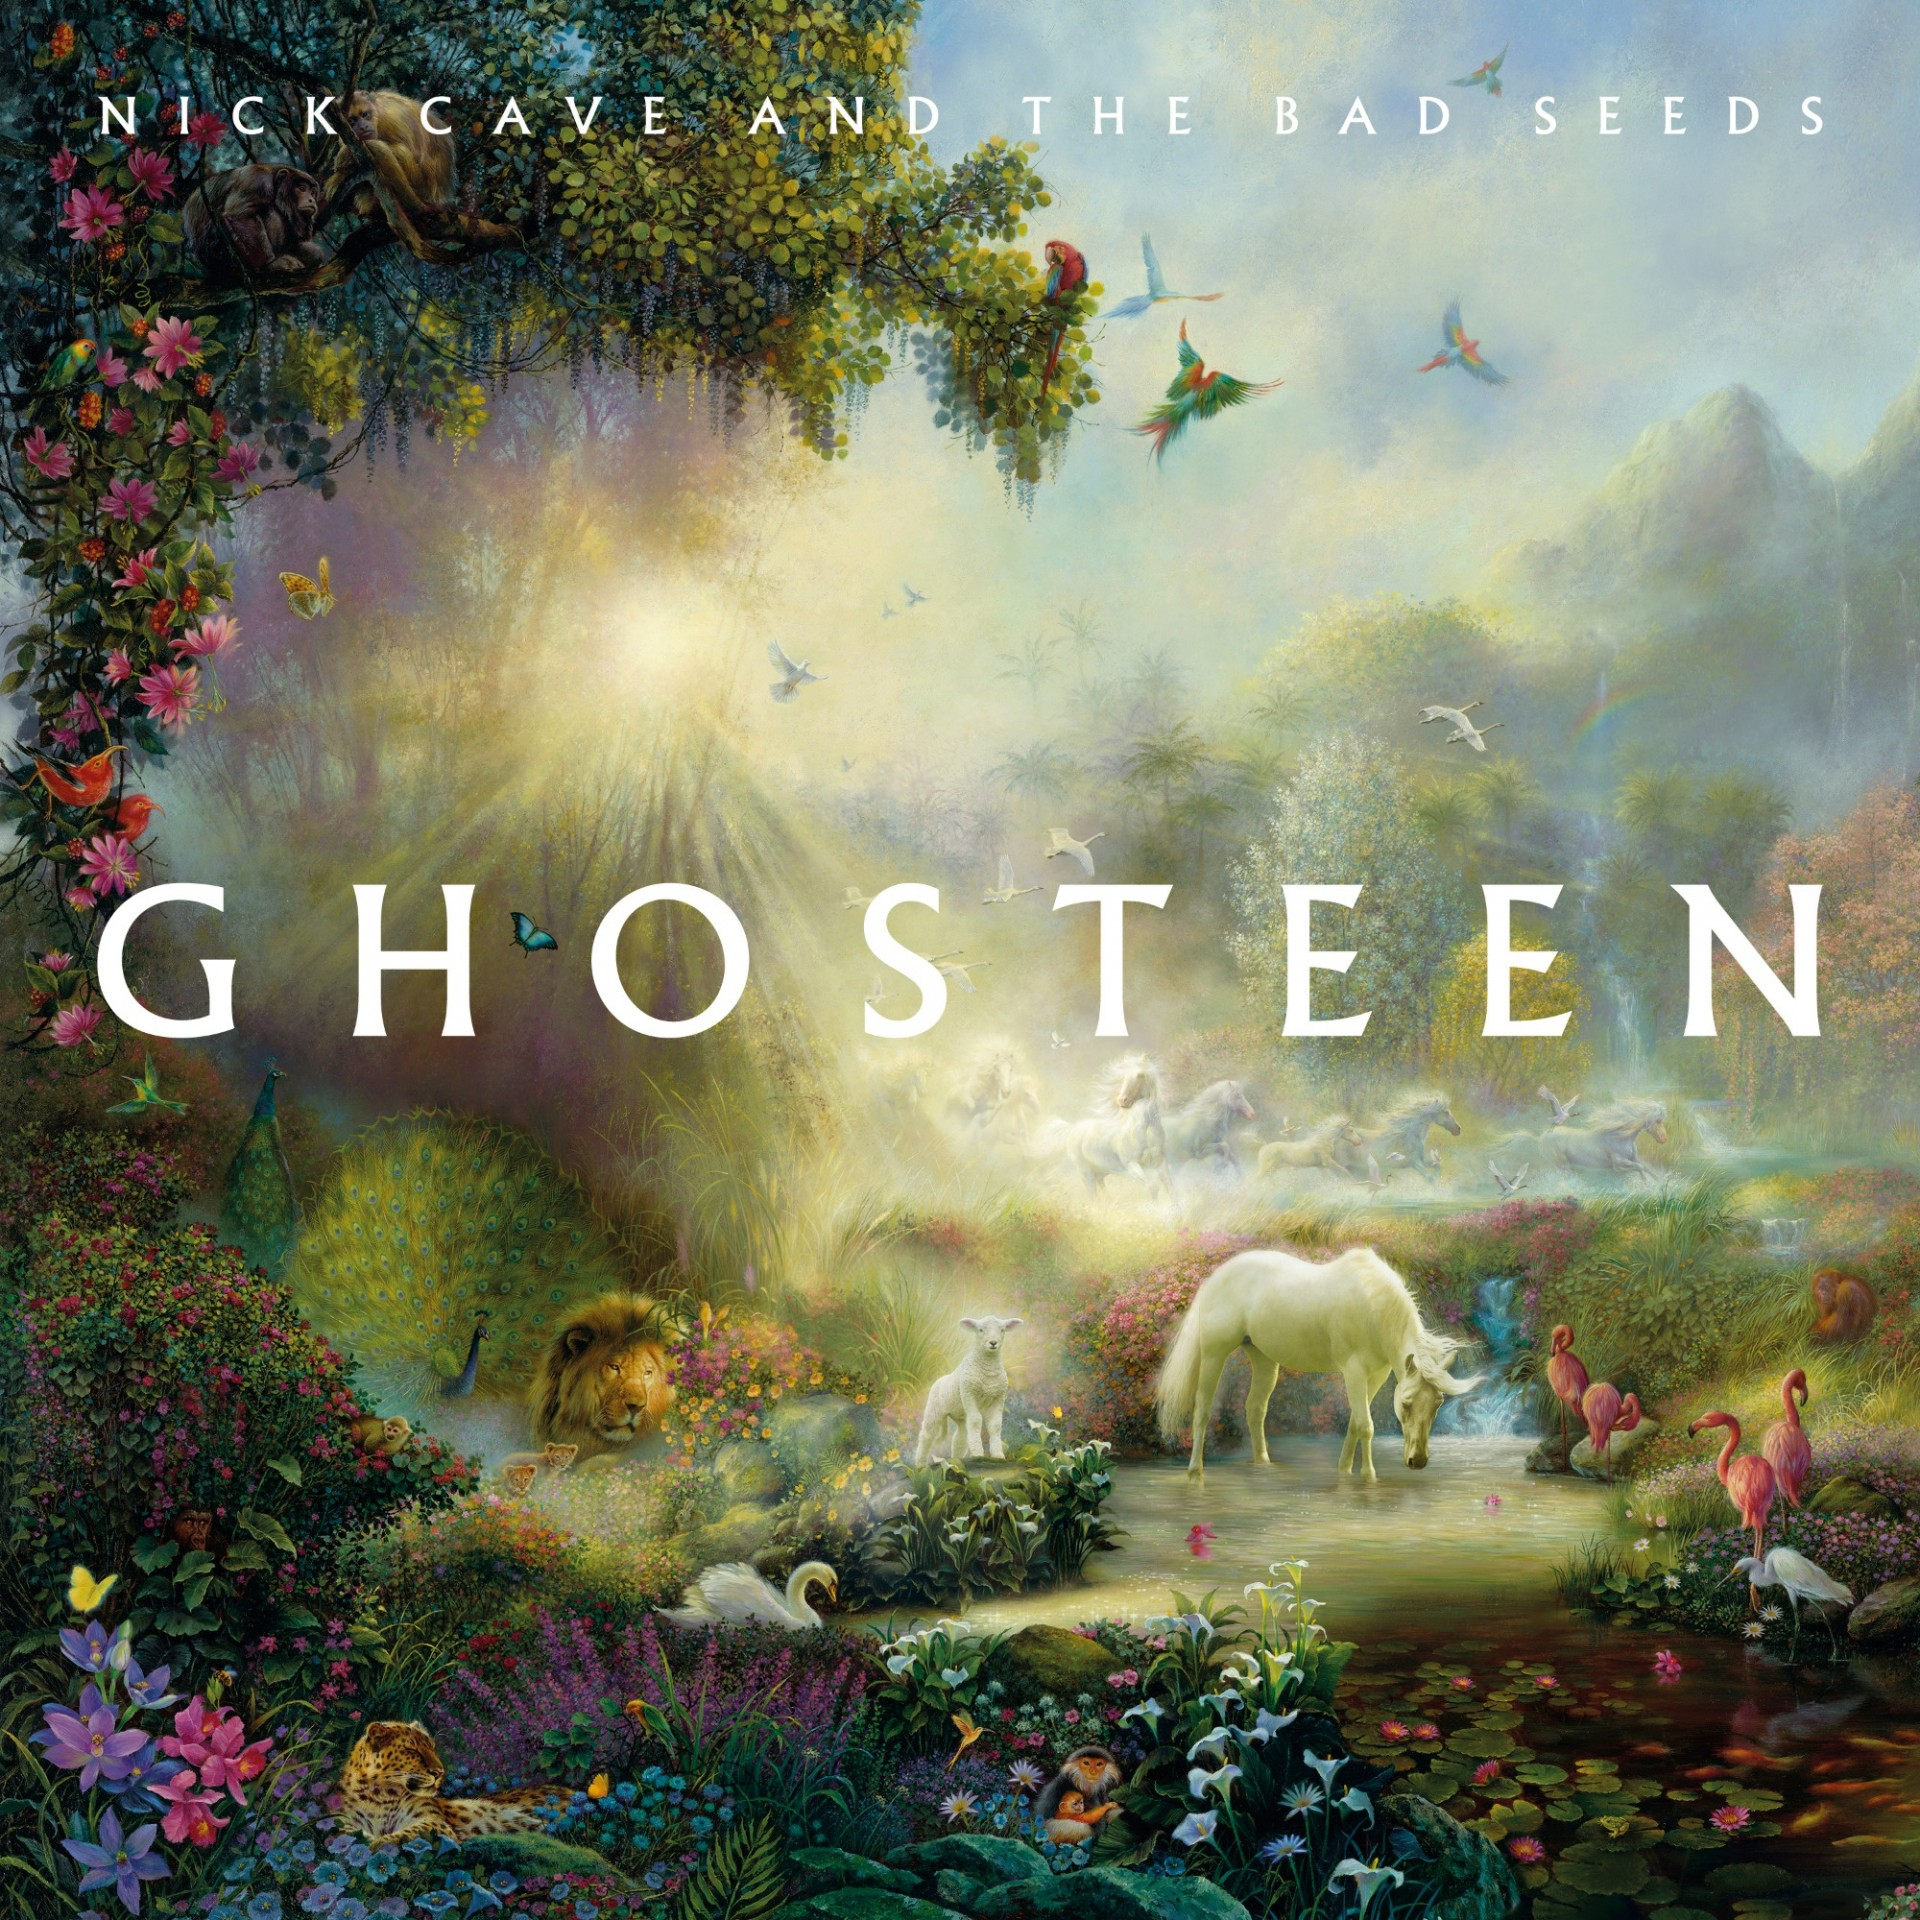 Nick Cave And The Bad Seeds New Album Ghosteen Out Now